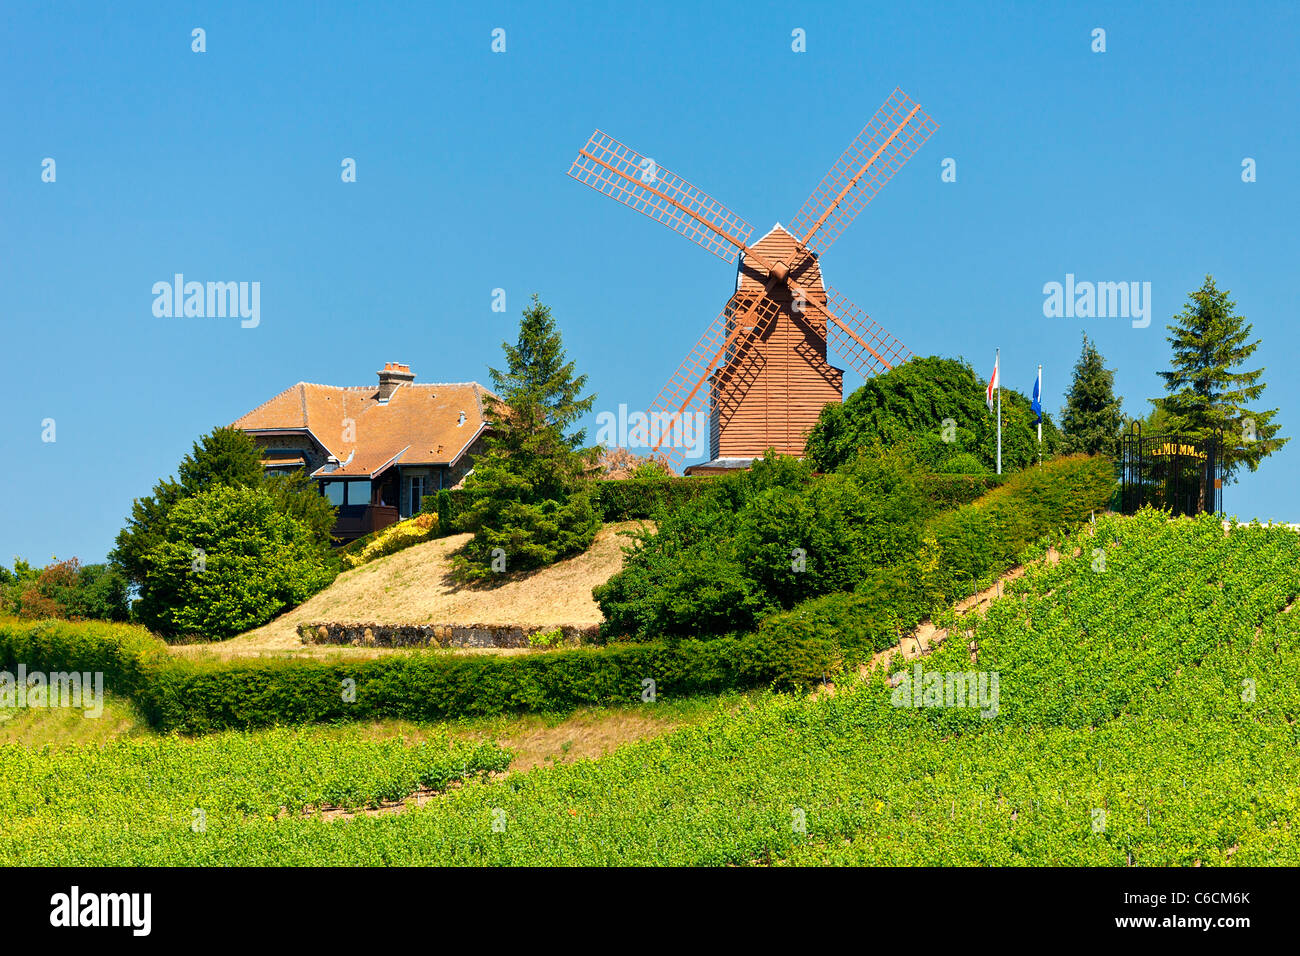 regional park of Montagne de Reims, Windmill of Verzenay - Stock Image